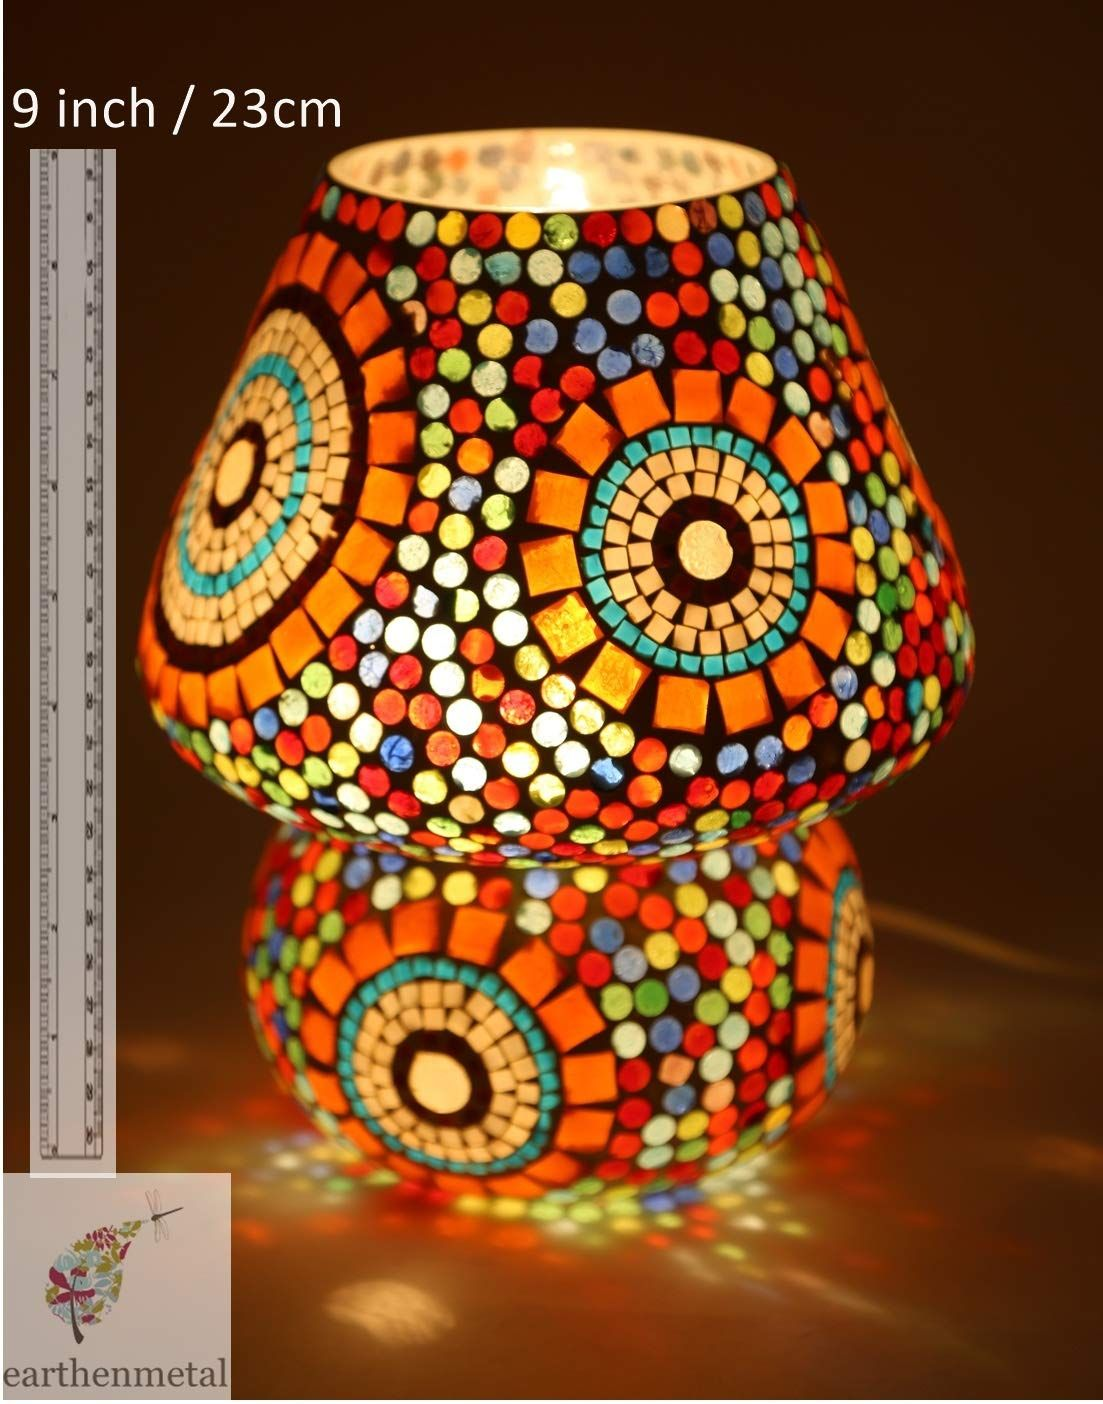 Earthenmetal Mosaic Style Dome Shaped Glass Table Lamp Glass Table Lamp Glass Table Lamp